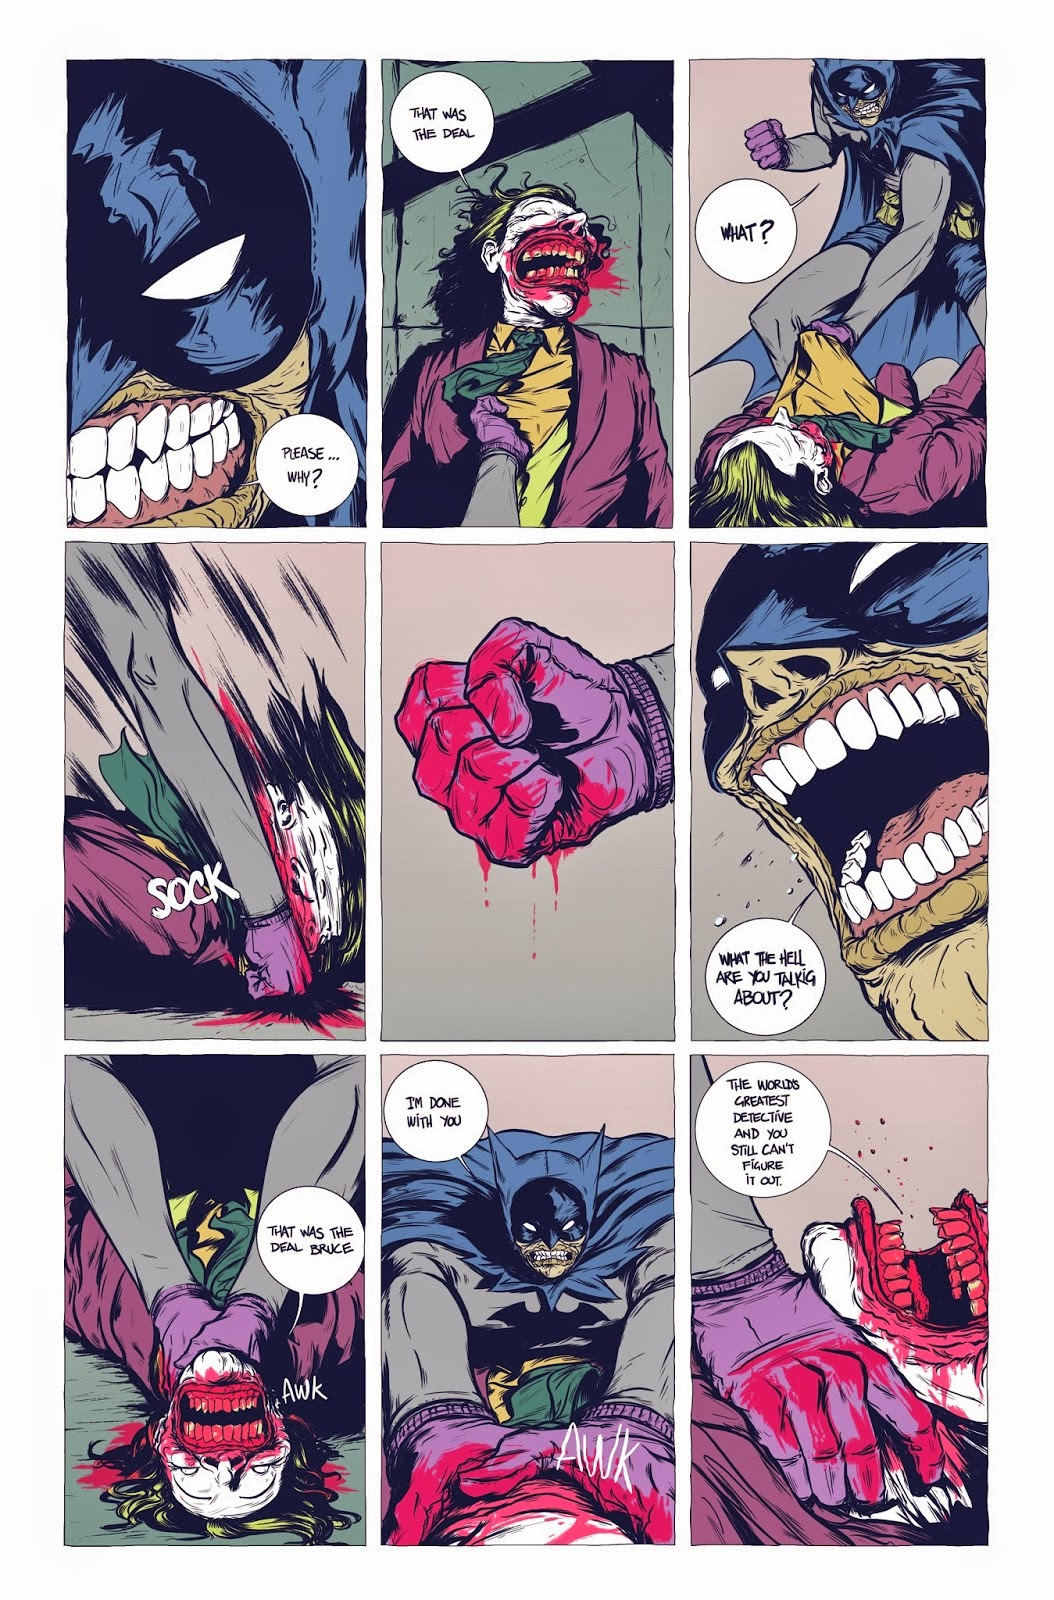 batman, batman the deal, daniel bayliss, gerardo preciado, moonhead batman, graphic novel batman, batman and joker, batman e coringa,